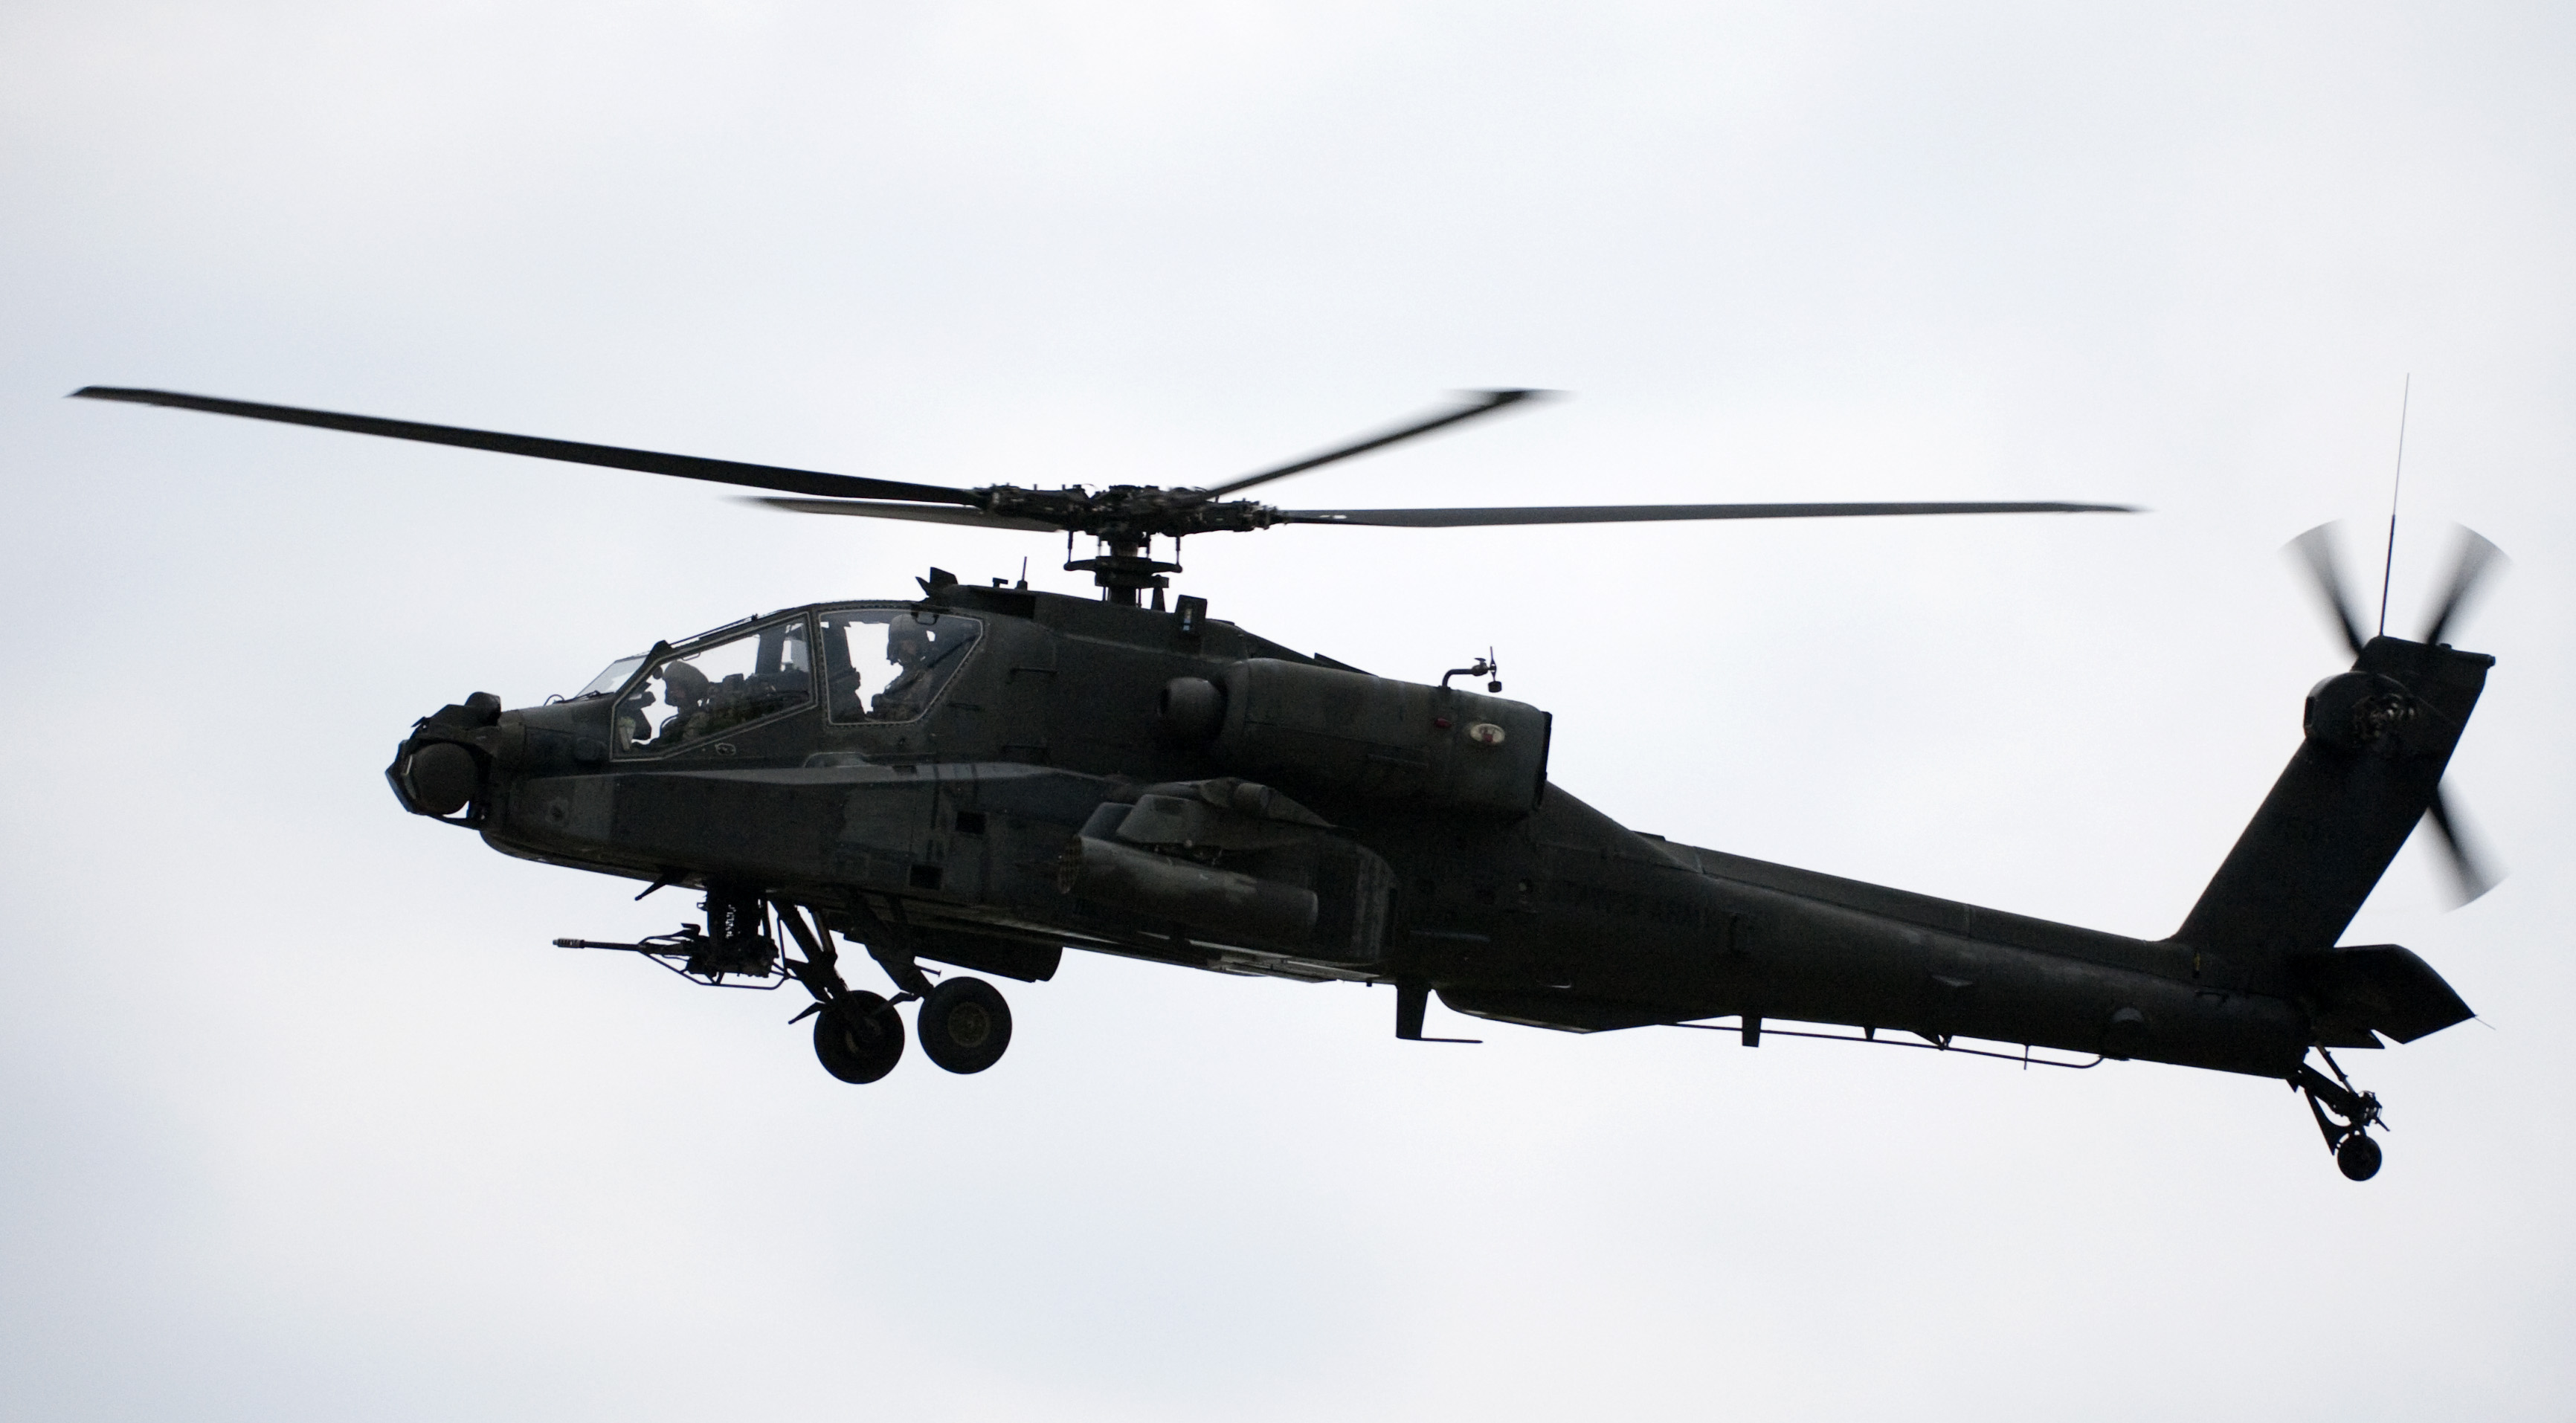 An Apache helicopter hovers over the race track during pre race ceremony before the start of the IRL IndyCar Series Meijer Indy 300 on August 1, 2009 at the Kentucky Speedway in Sparta, Kentucky.